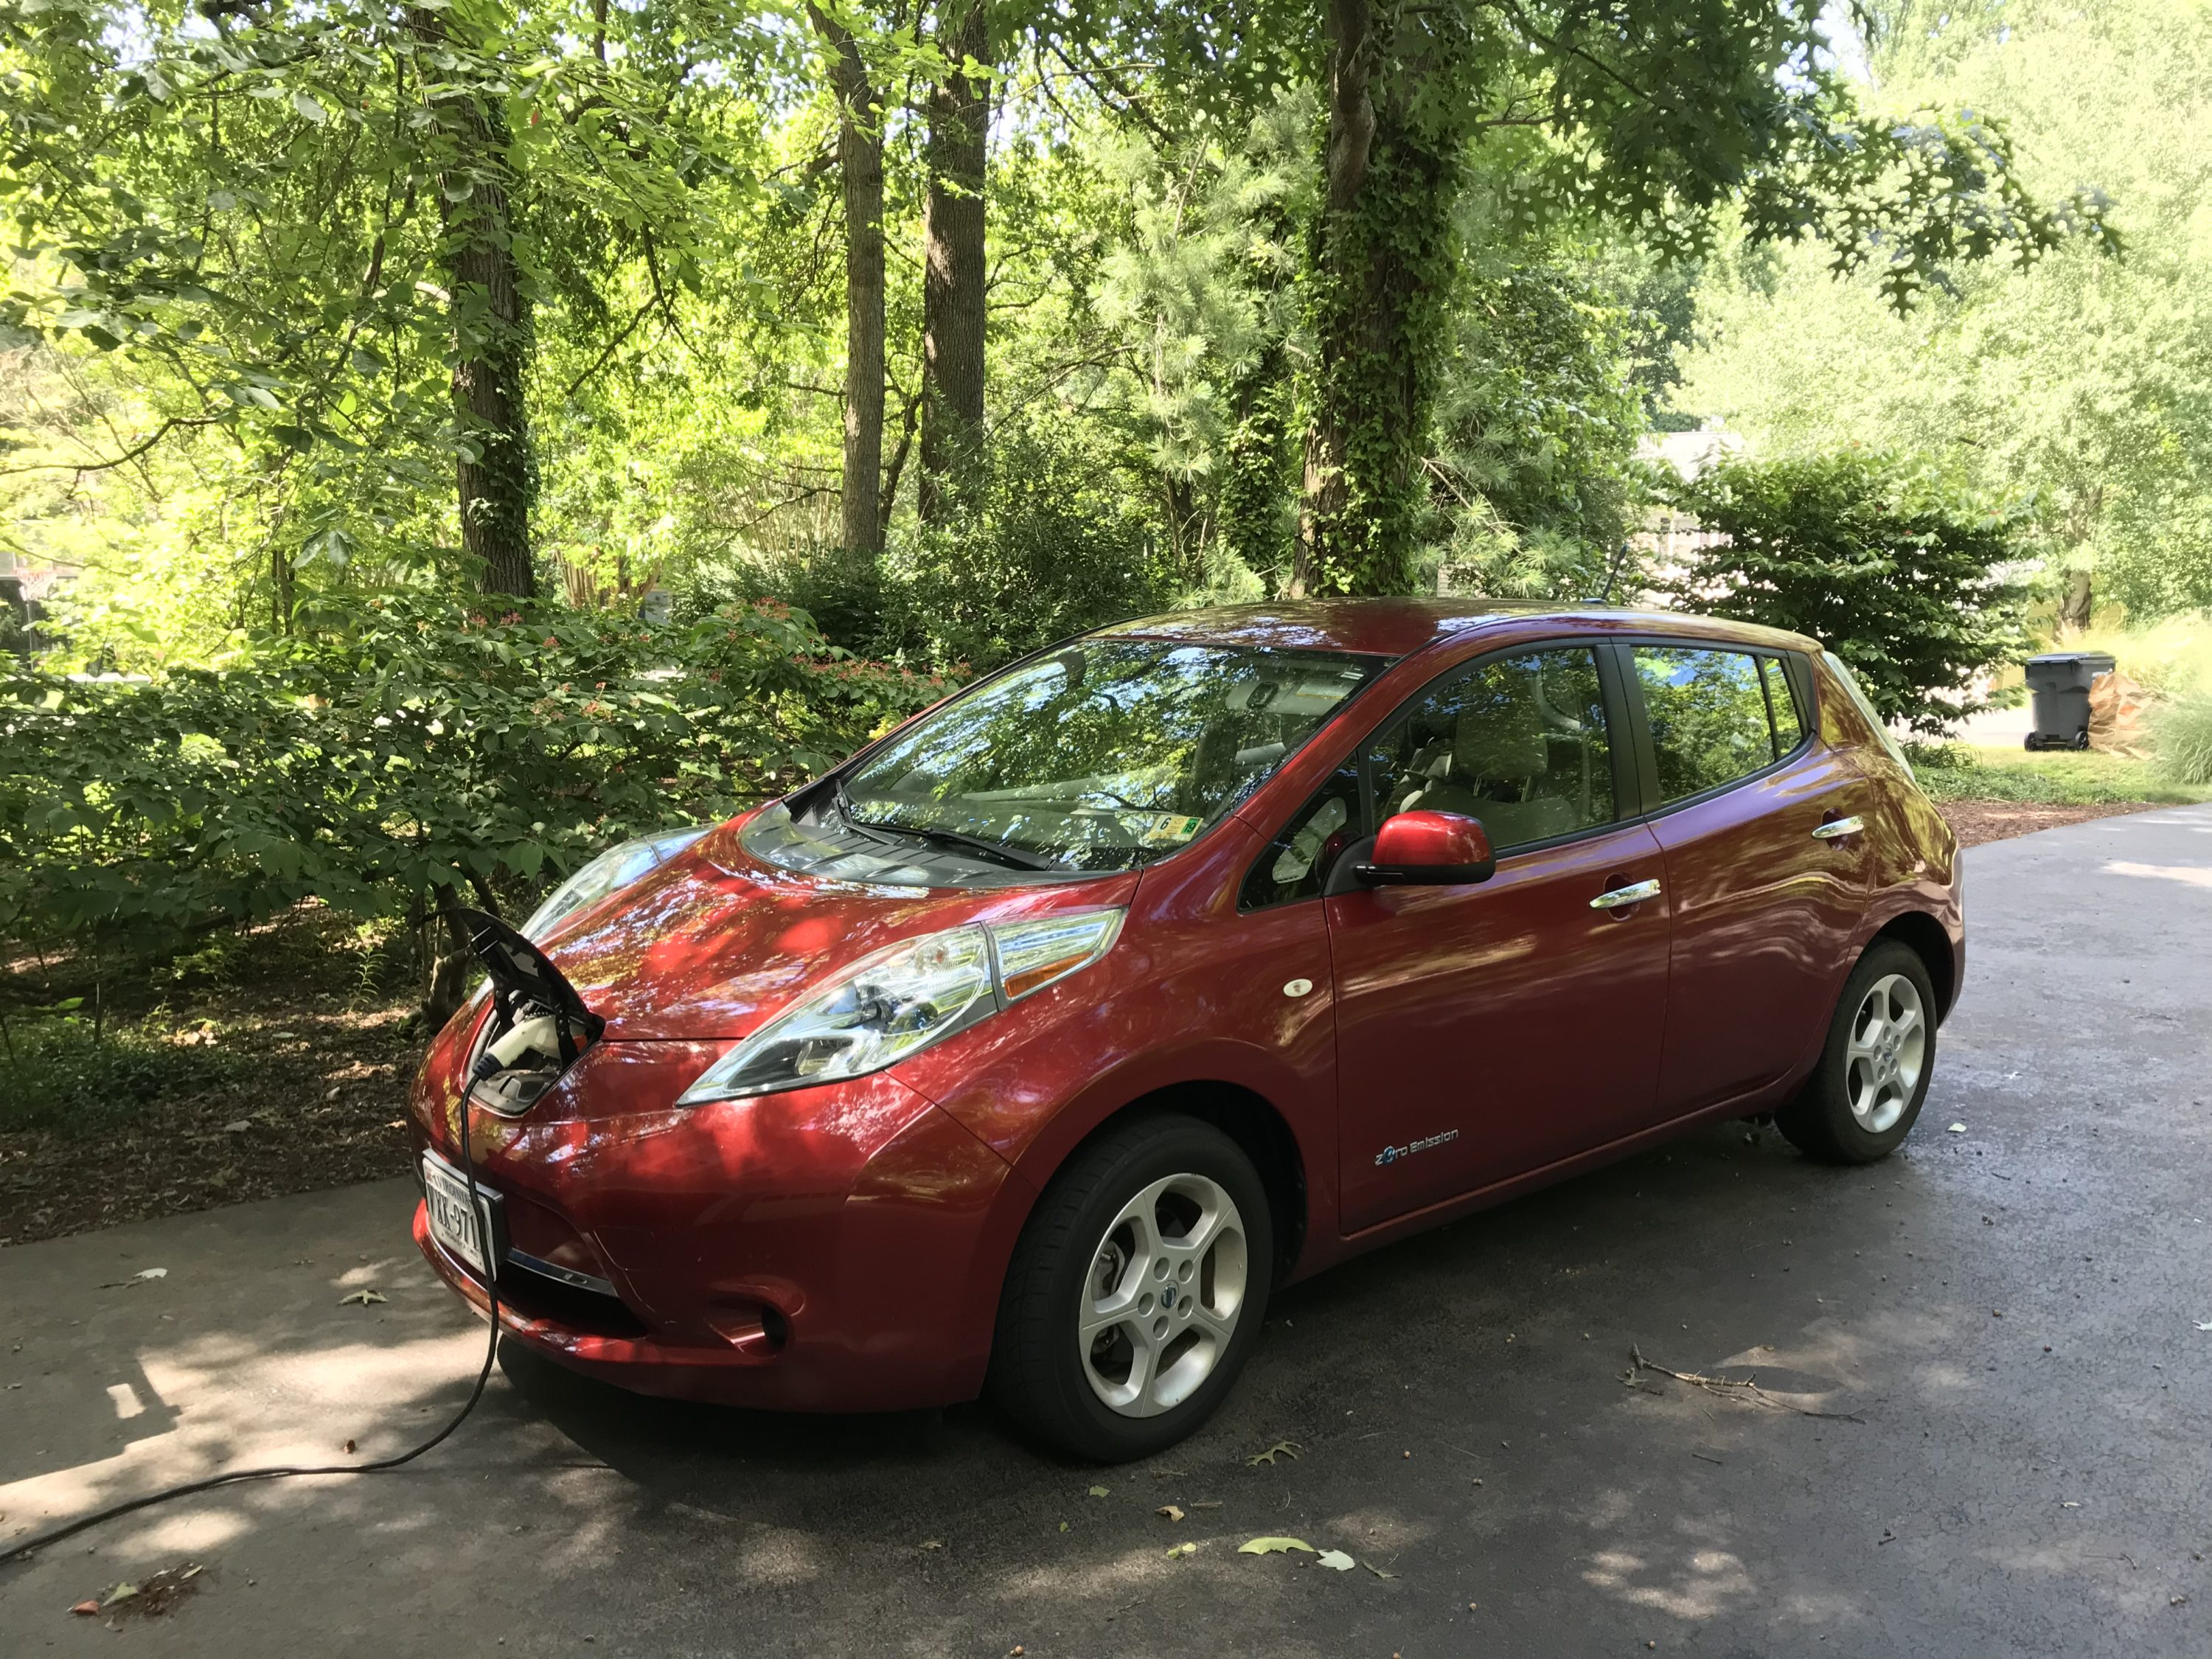 Electric Cars in Cold Climates: Why do EV Batteries Lose so Much Range when the Weather Drops?